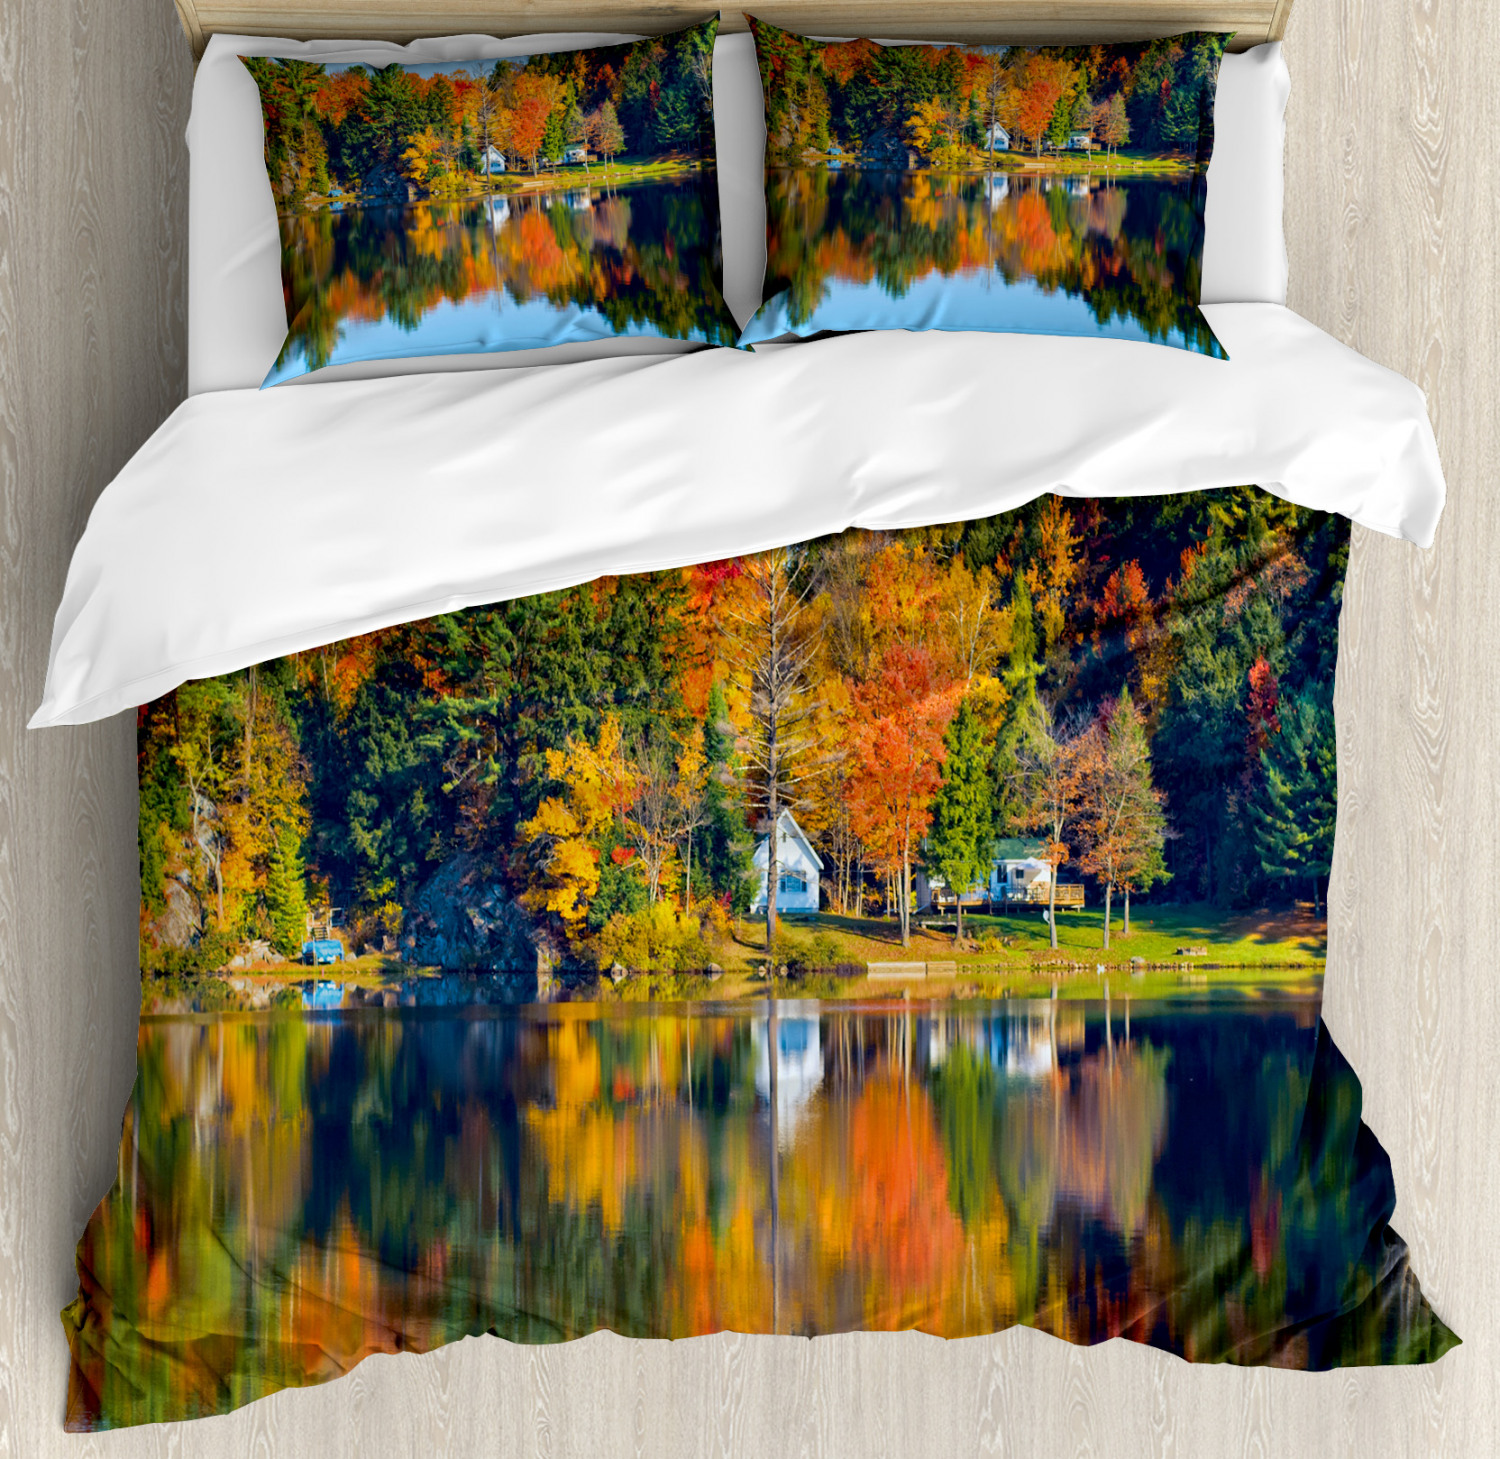 Landscape King Size Duvet Cover Set Lake House in Autumn with 2 Pillow Shams